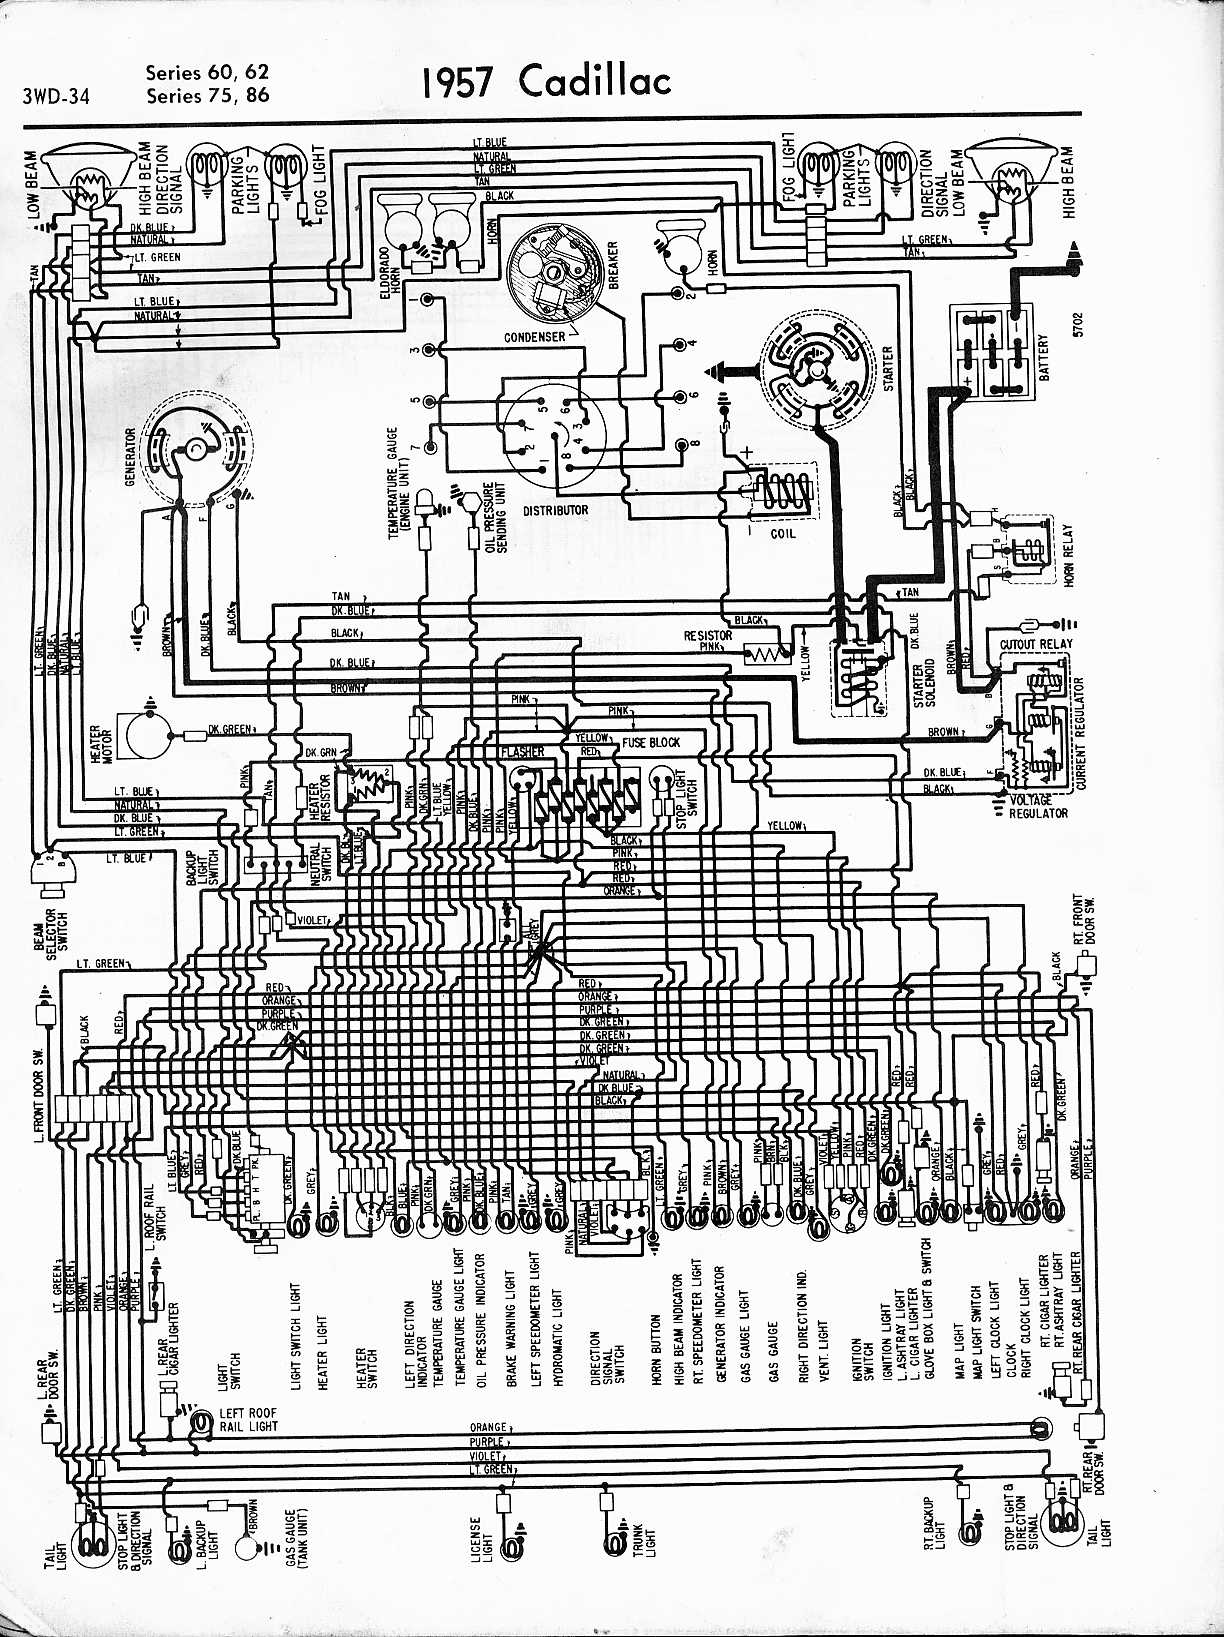 hight resolution of cadillac wiring diagrams wiring diagram usedcadillac wiring diagrams 1957 1965 cadillac wiring diagrams schematics cadillac wiring